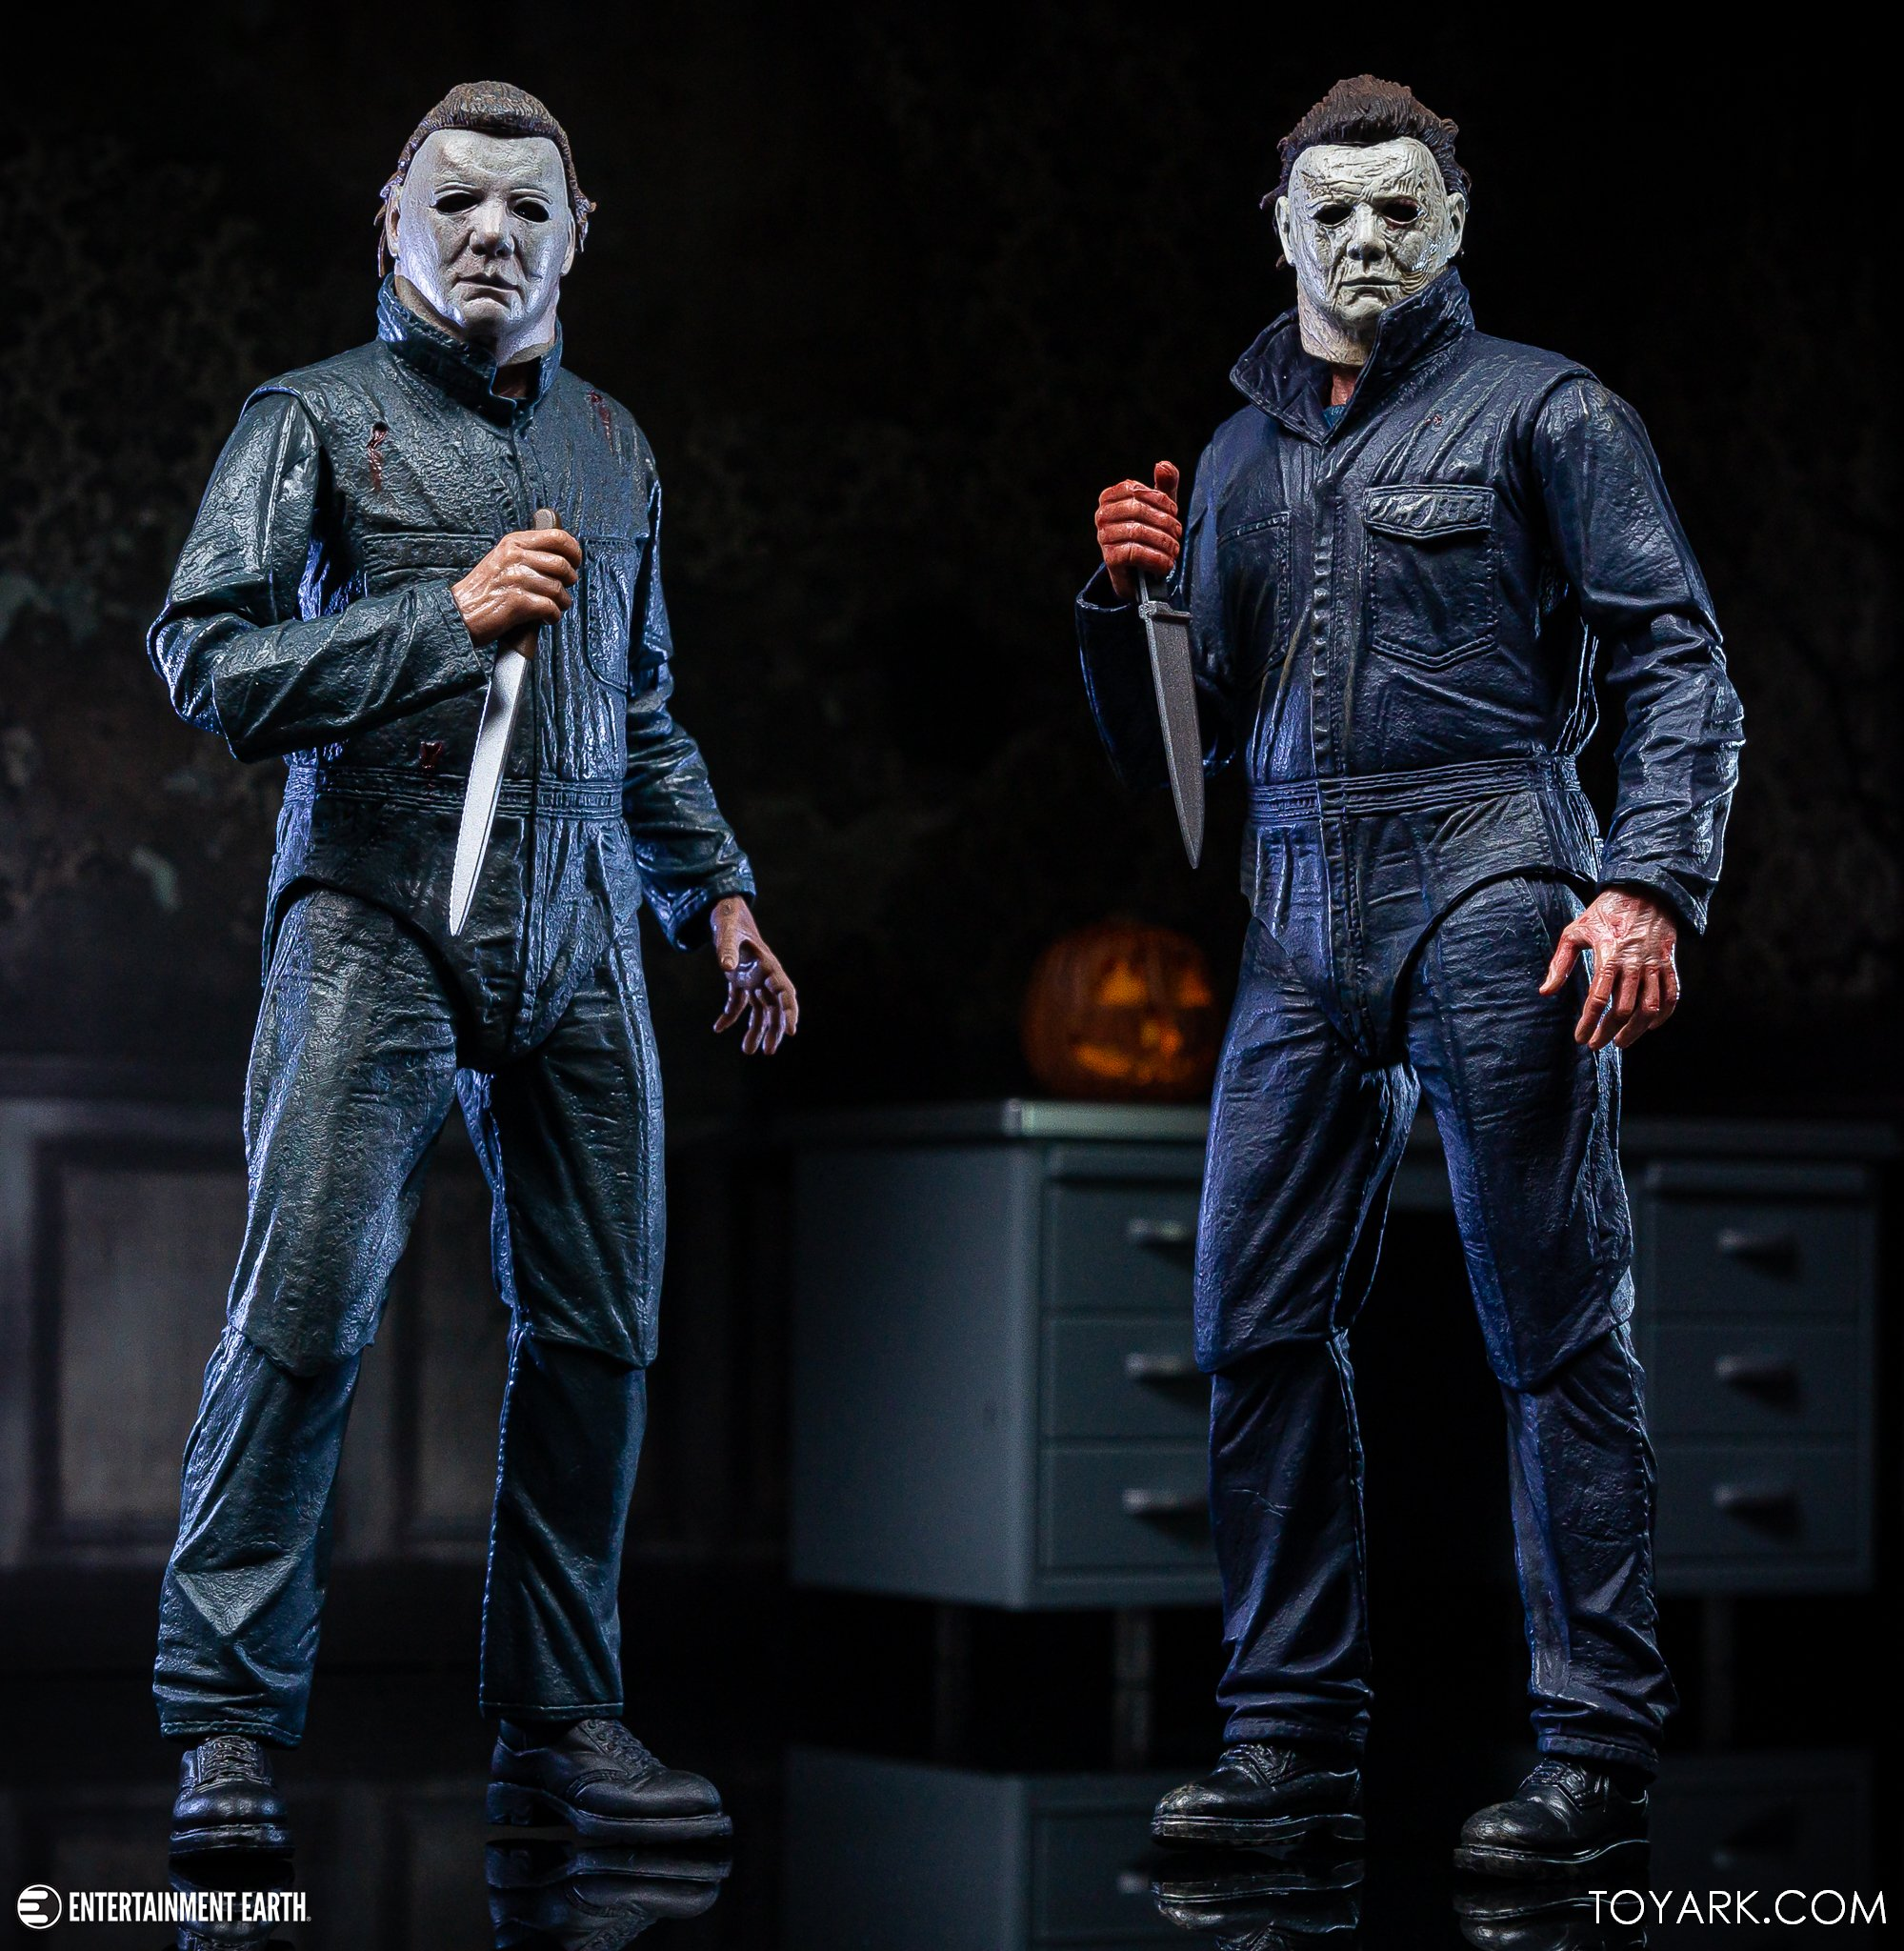 https://news.toyark.com/wp-content/uploads/sites/4/2019/10/NECA-Halloween-II-Michael-Myers-046.jpg